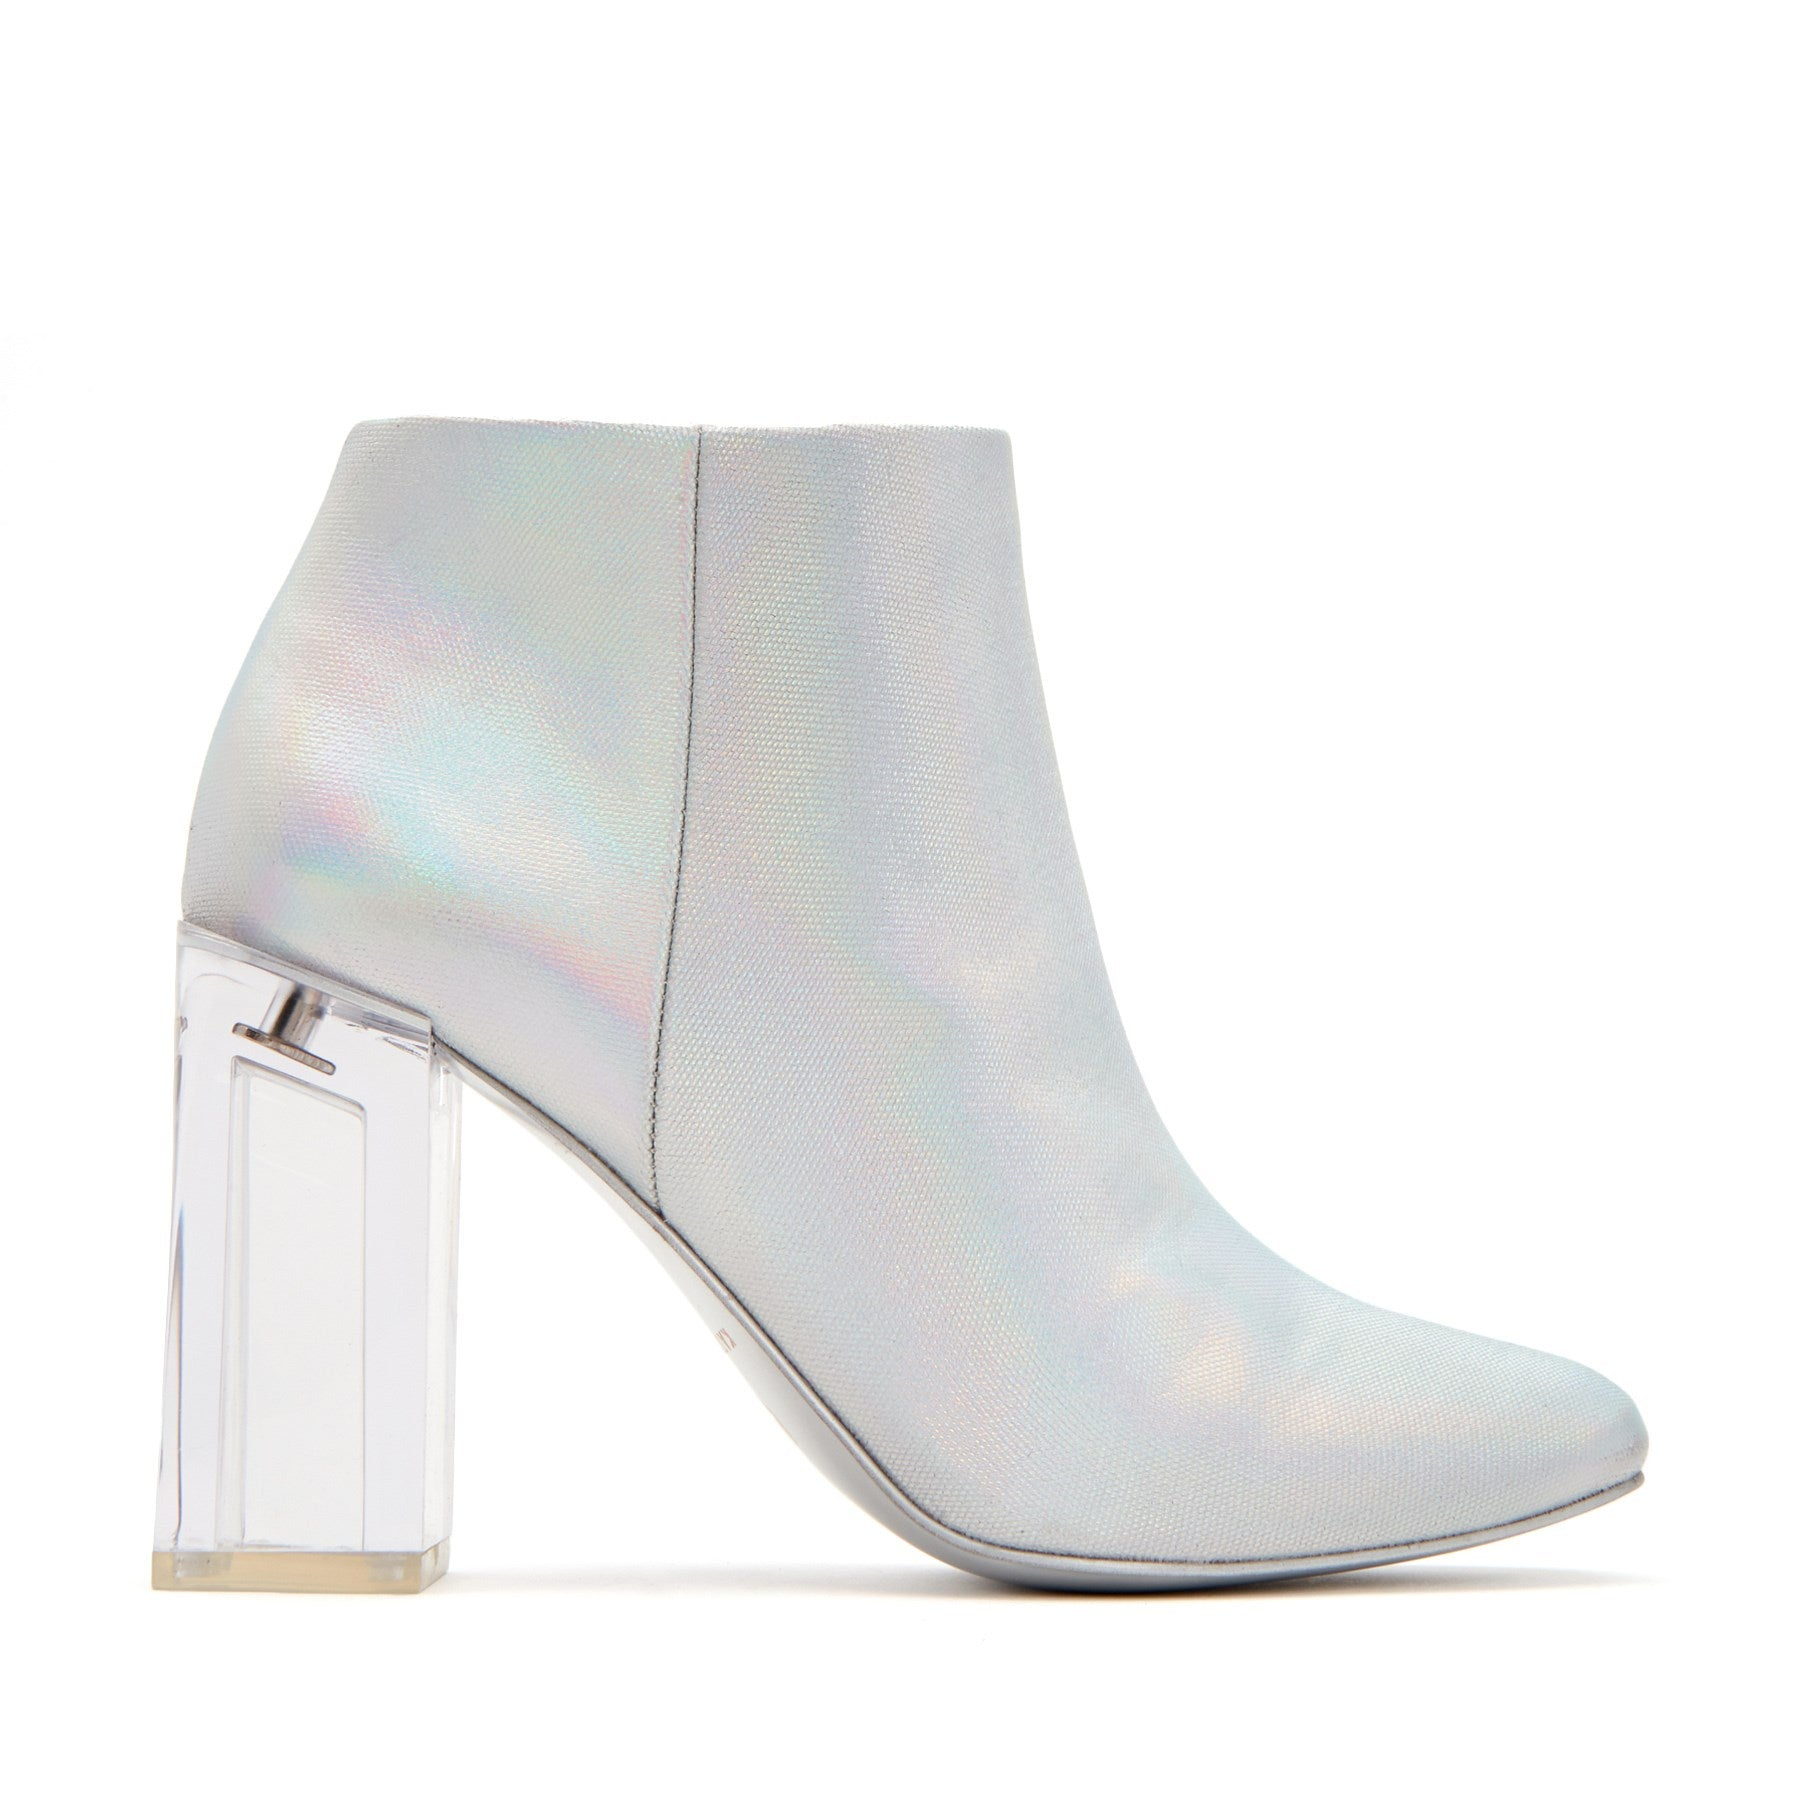 katy perry heeled boot size 6.5   the sizzle